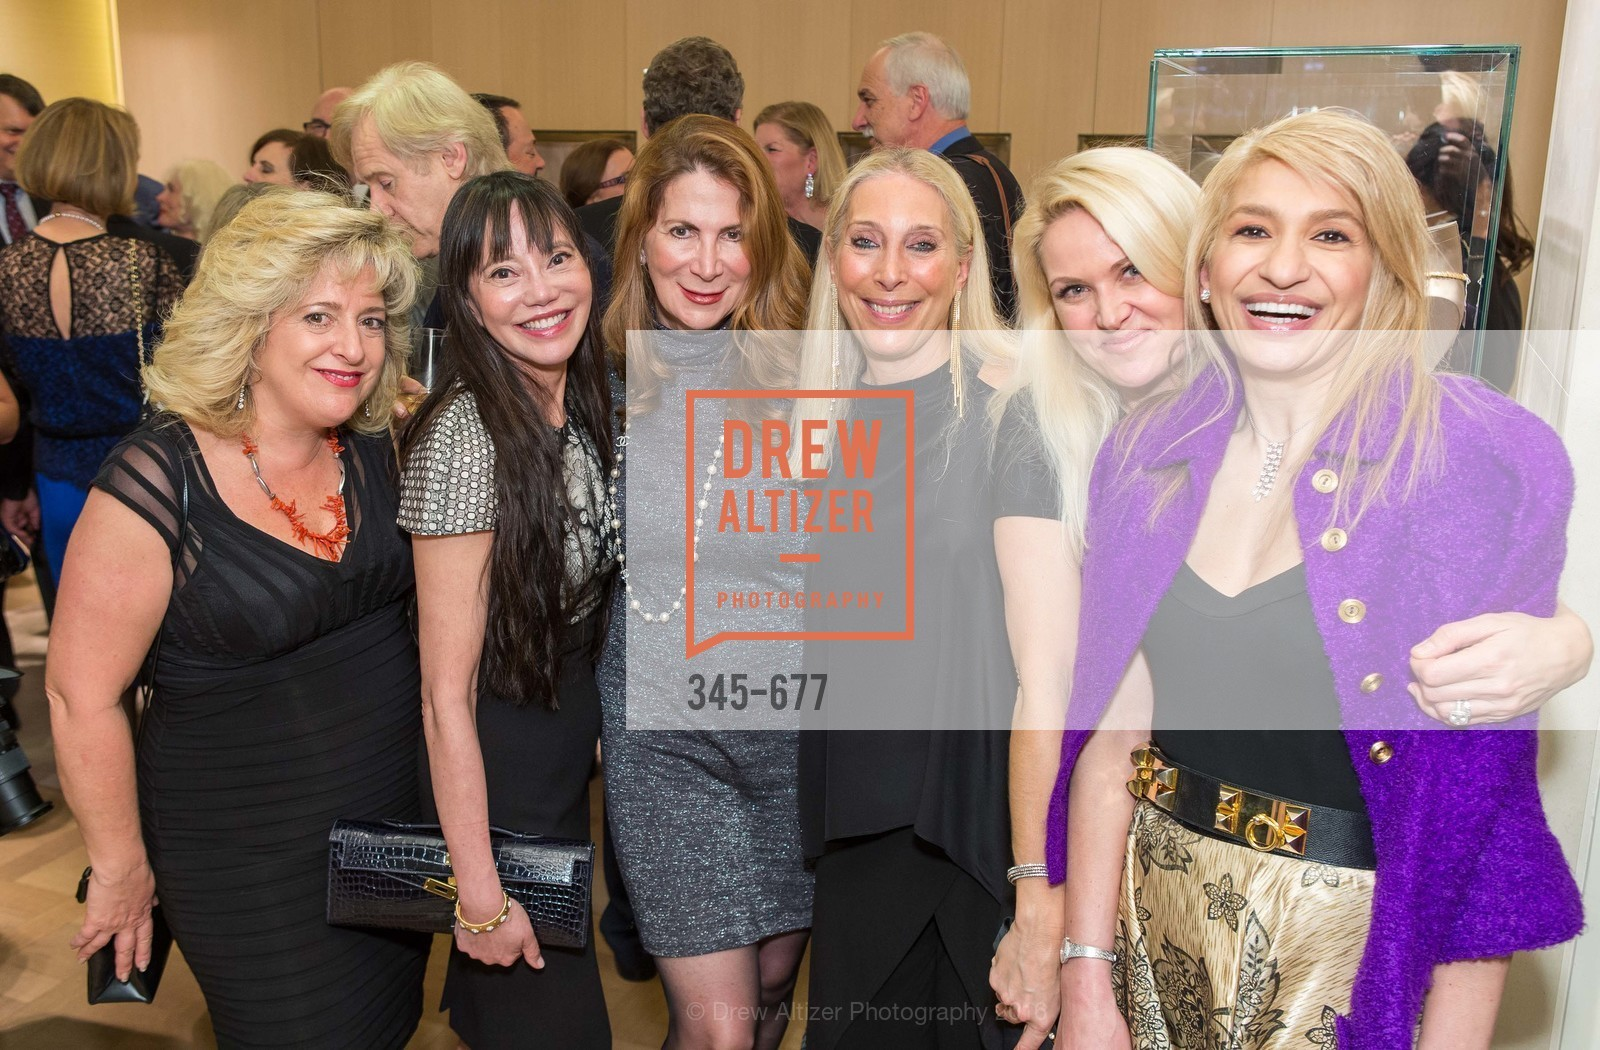 Holly Thier, France Szeto, Patricia Ferrin Loucks, Betsy Linder, Maria Ralph, Navid Armstrong, Bulgari Hosts The 2016 Ballet Gala Patrons Party, Bulgari. 200 Stockton st, January 7th, 2016,Drew Altizer, Drew Altizer Photography, full-service agency, private events, San Francisco photographer, photographer california